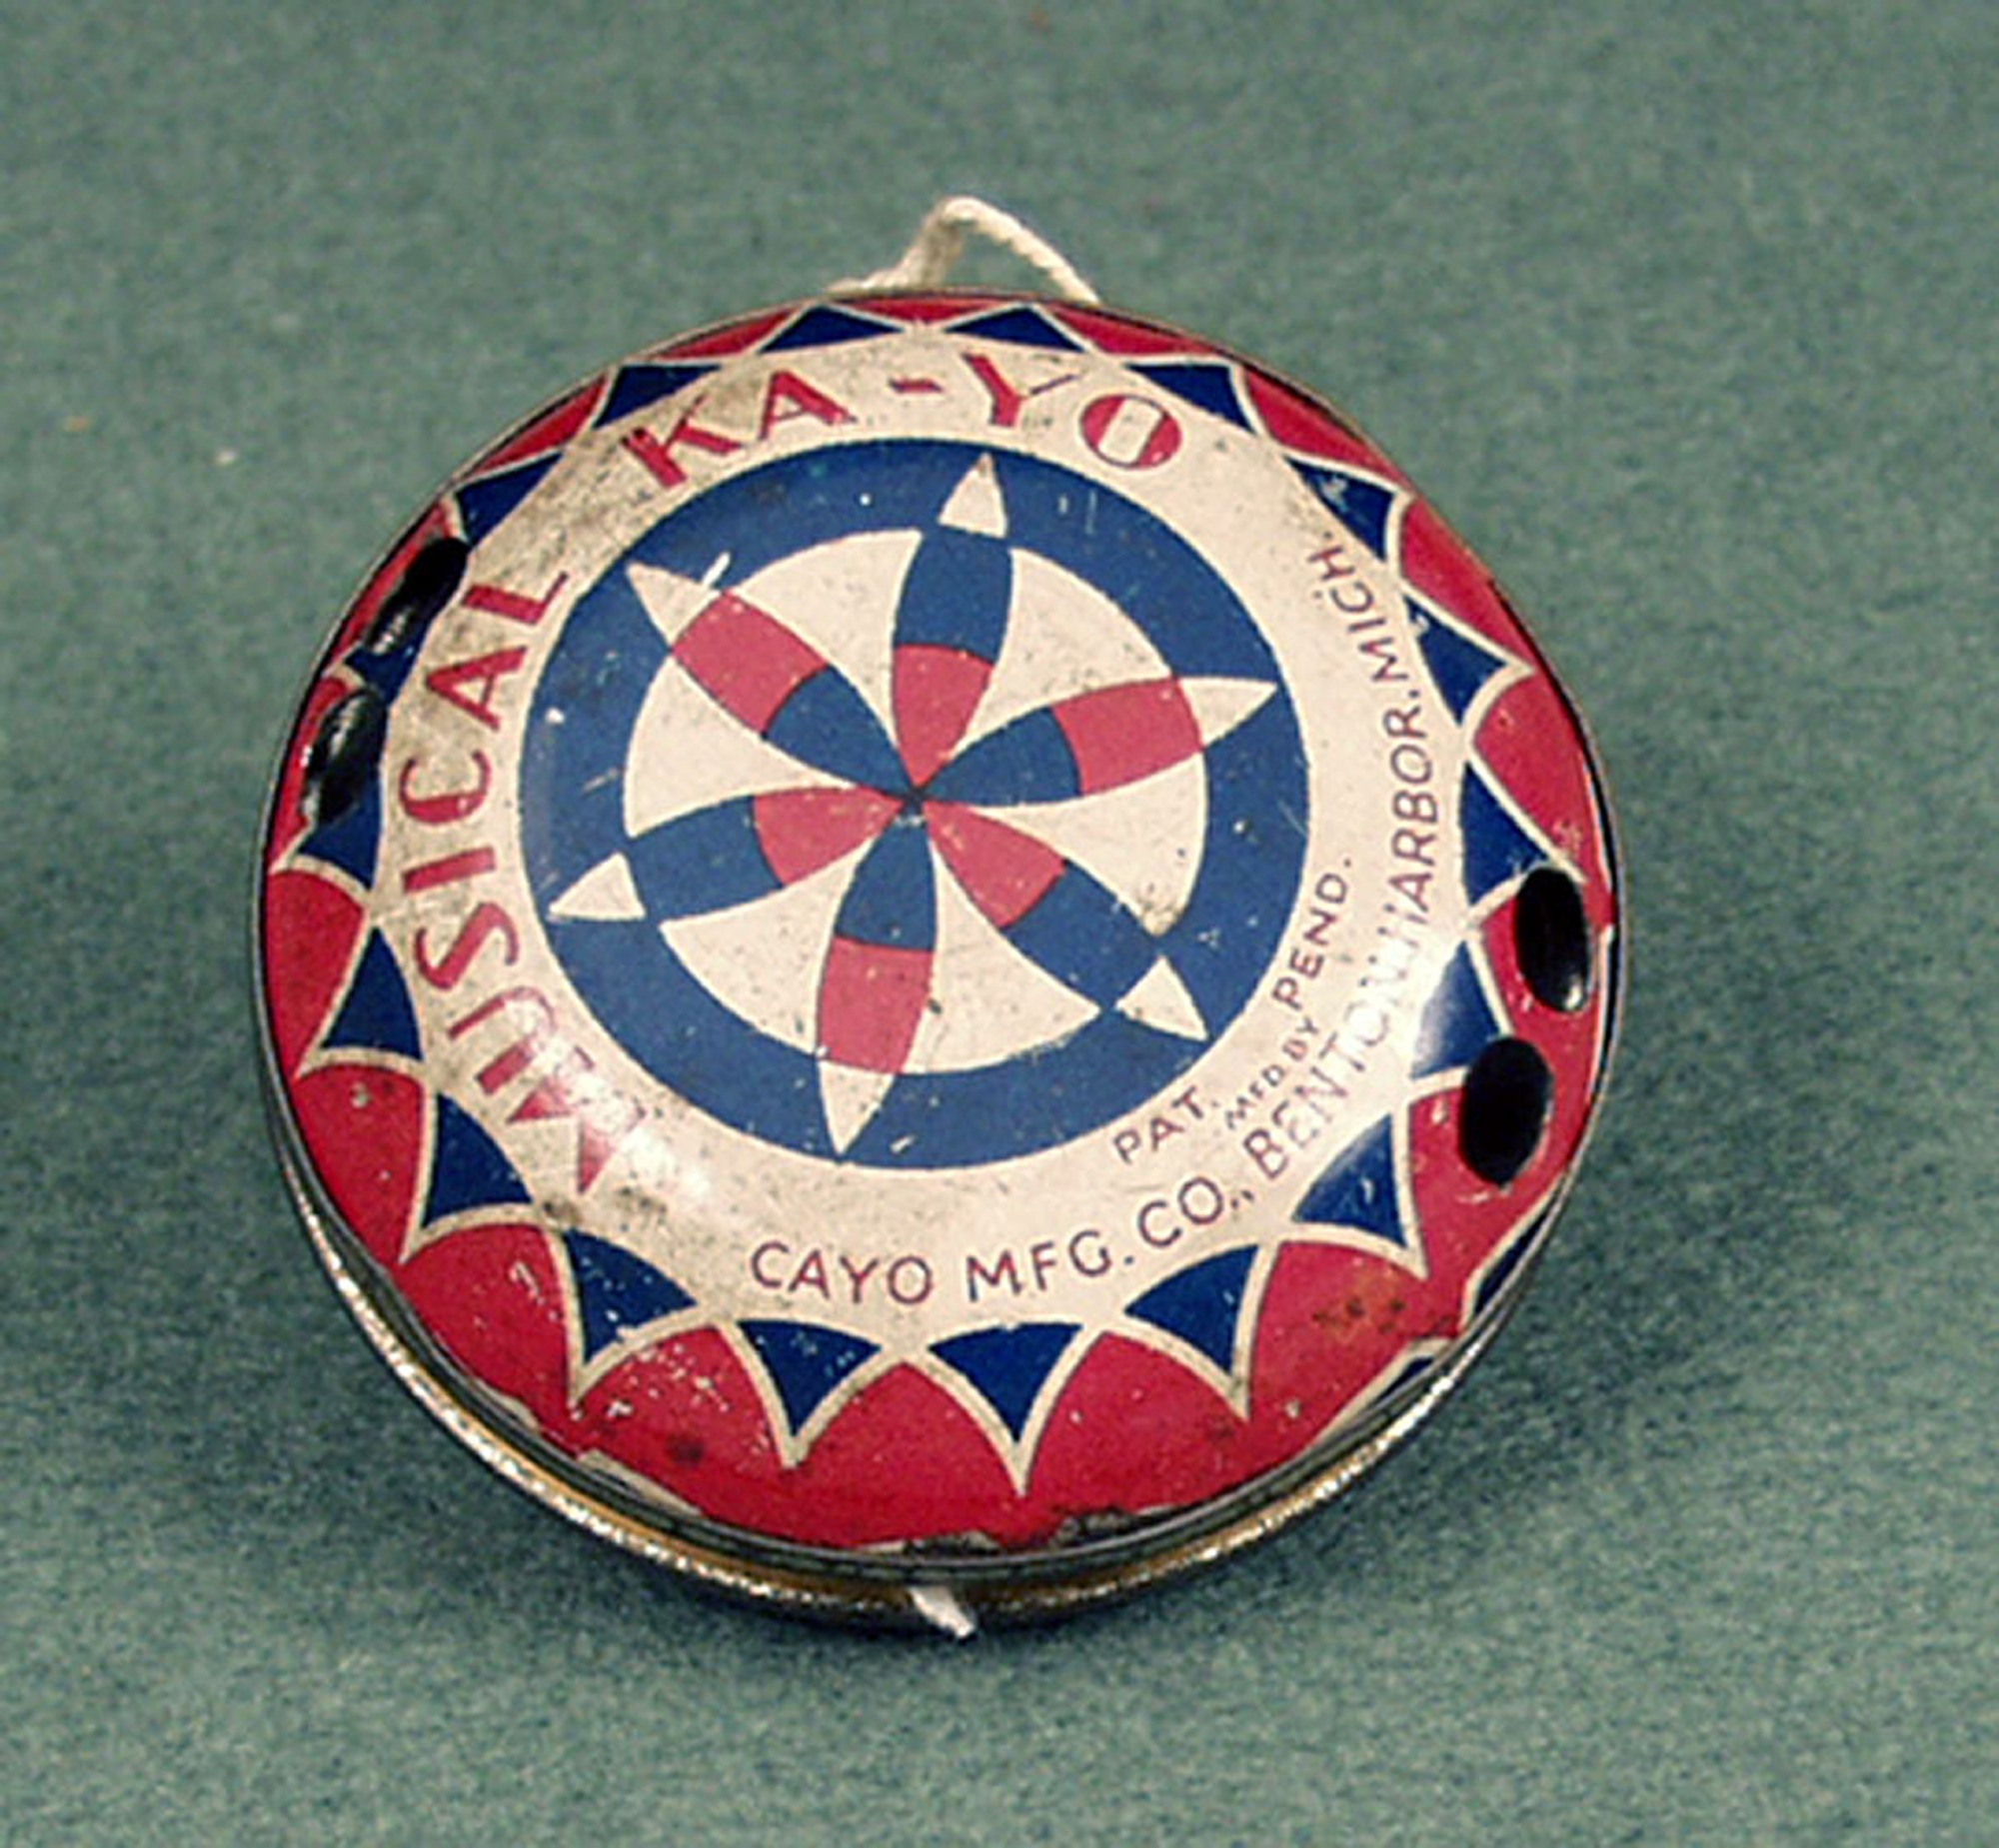 Red white and blue metal yo-yo with flower design at the center